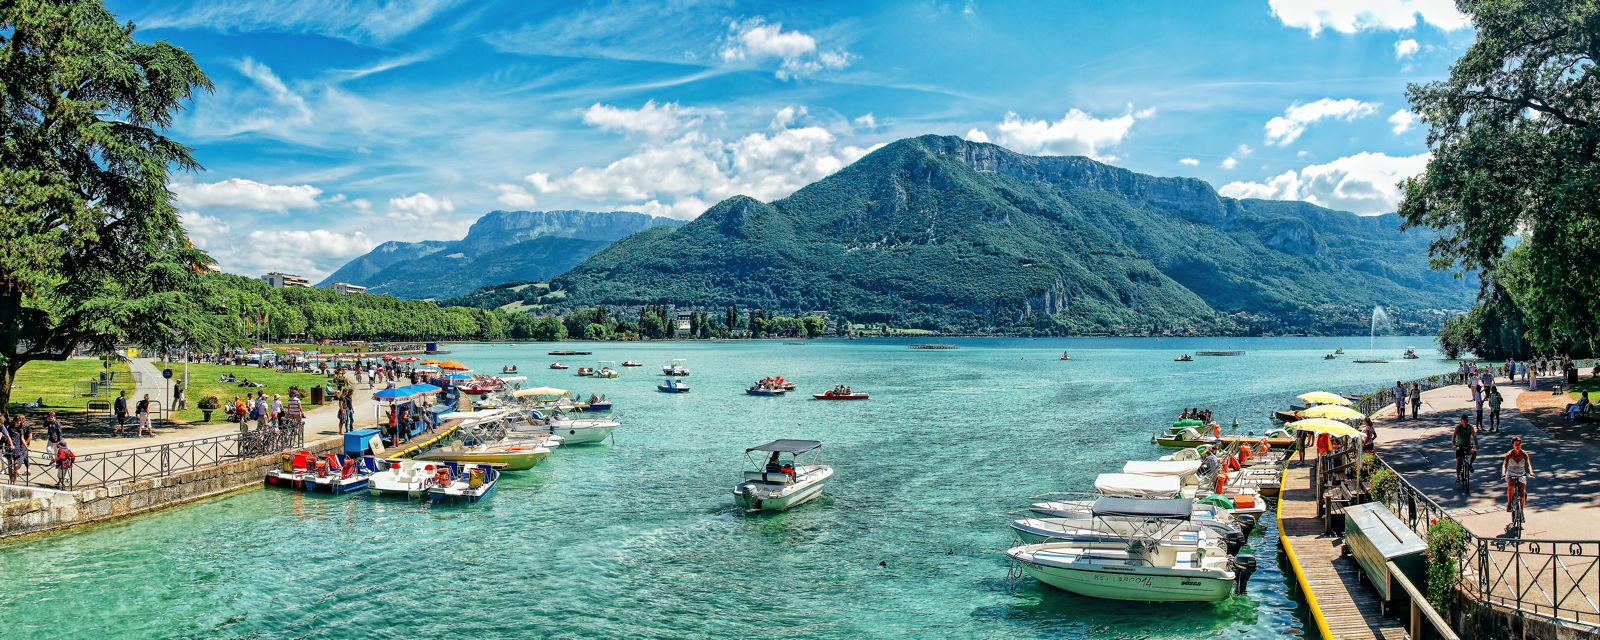 15 Reasons Why You Need To Visit Annecy In The South Of France! (14)